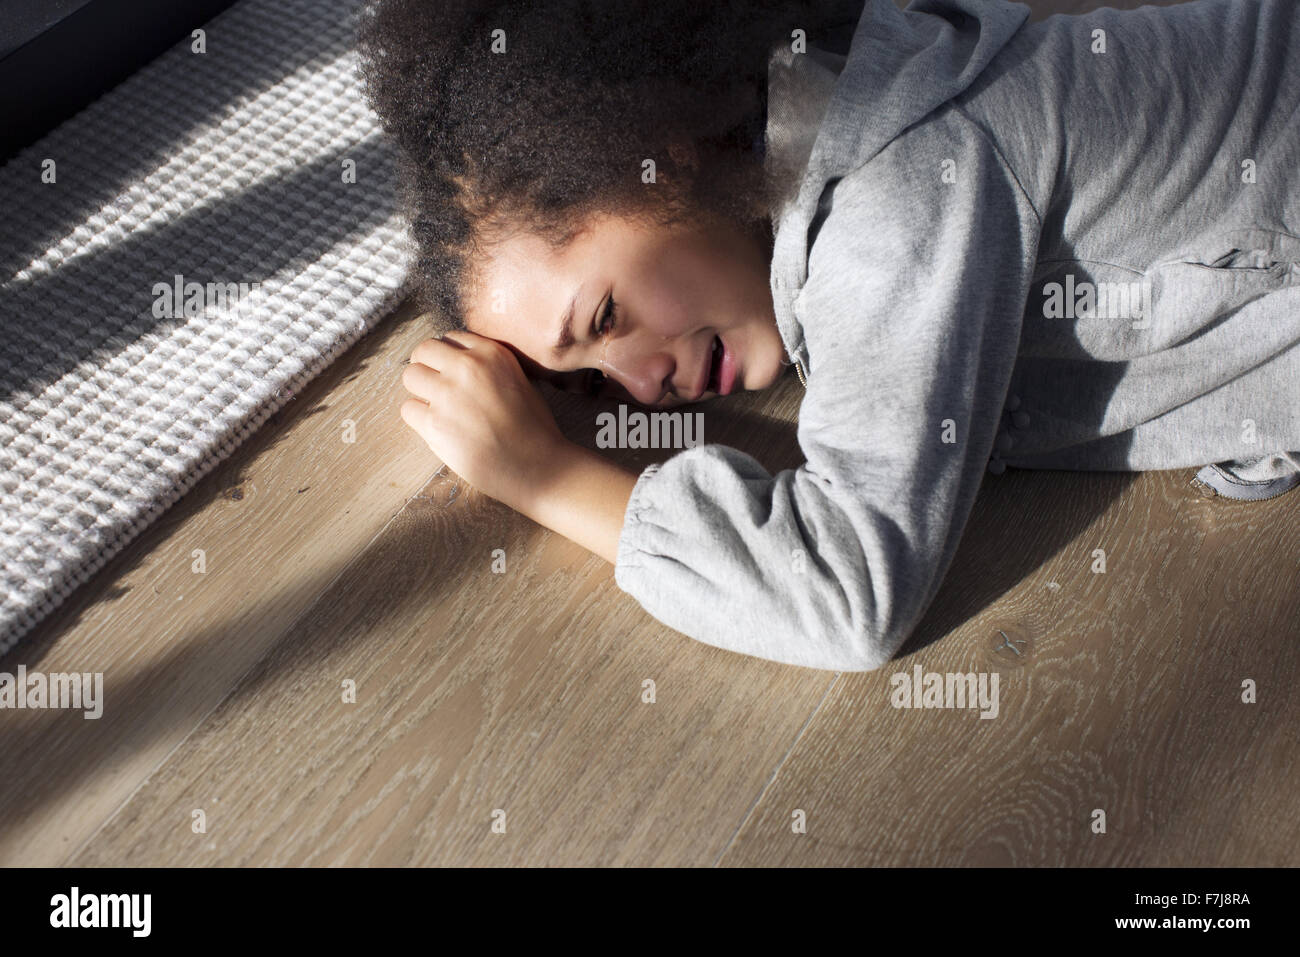 Girl lying on floor crying - Stock Image